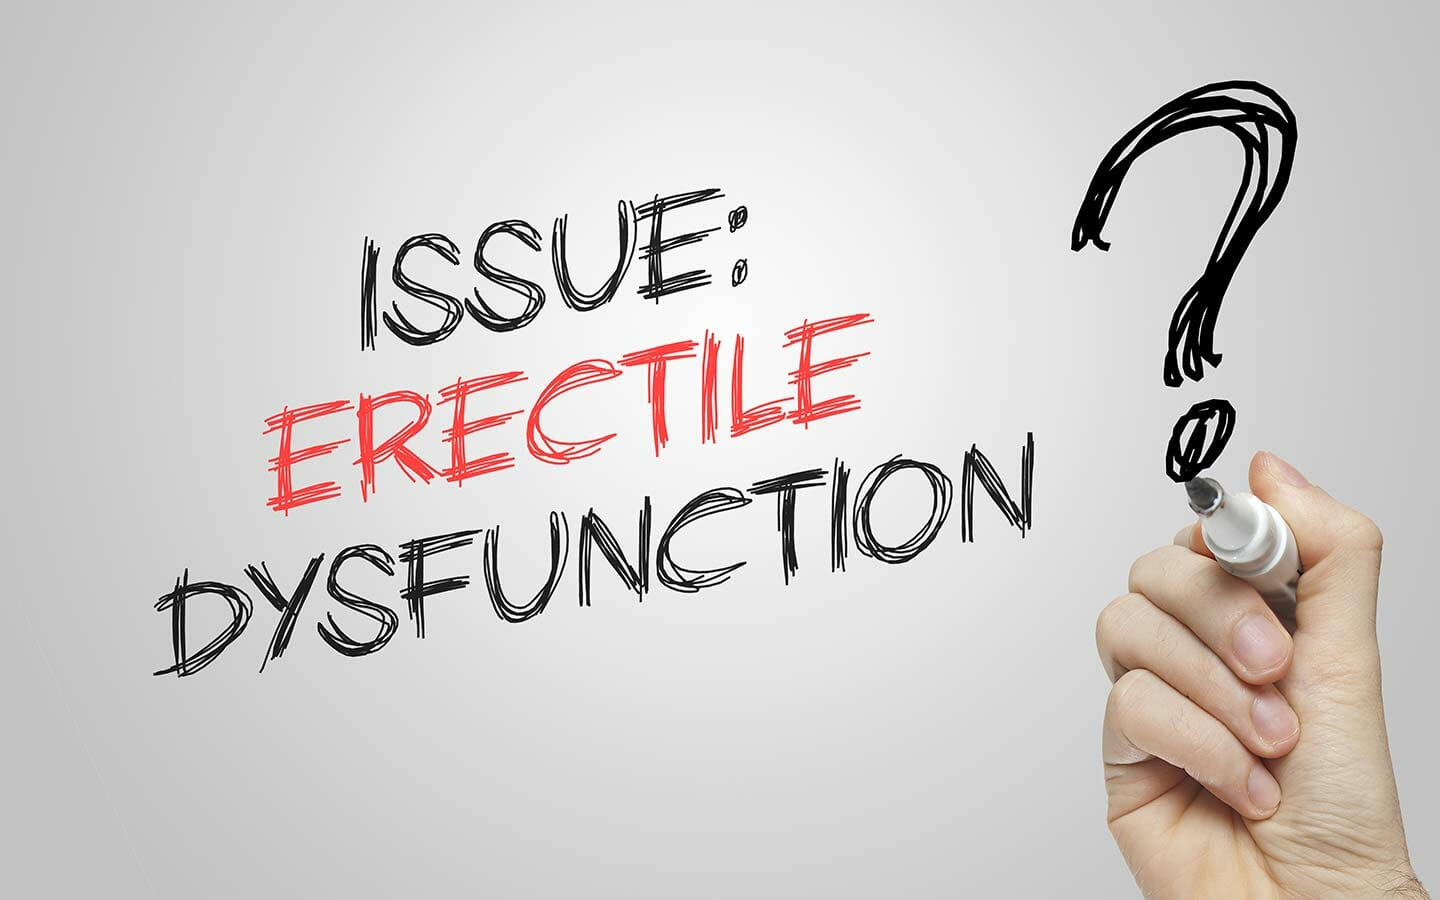 Dealing with erectile issues in your relationship